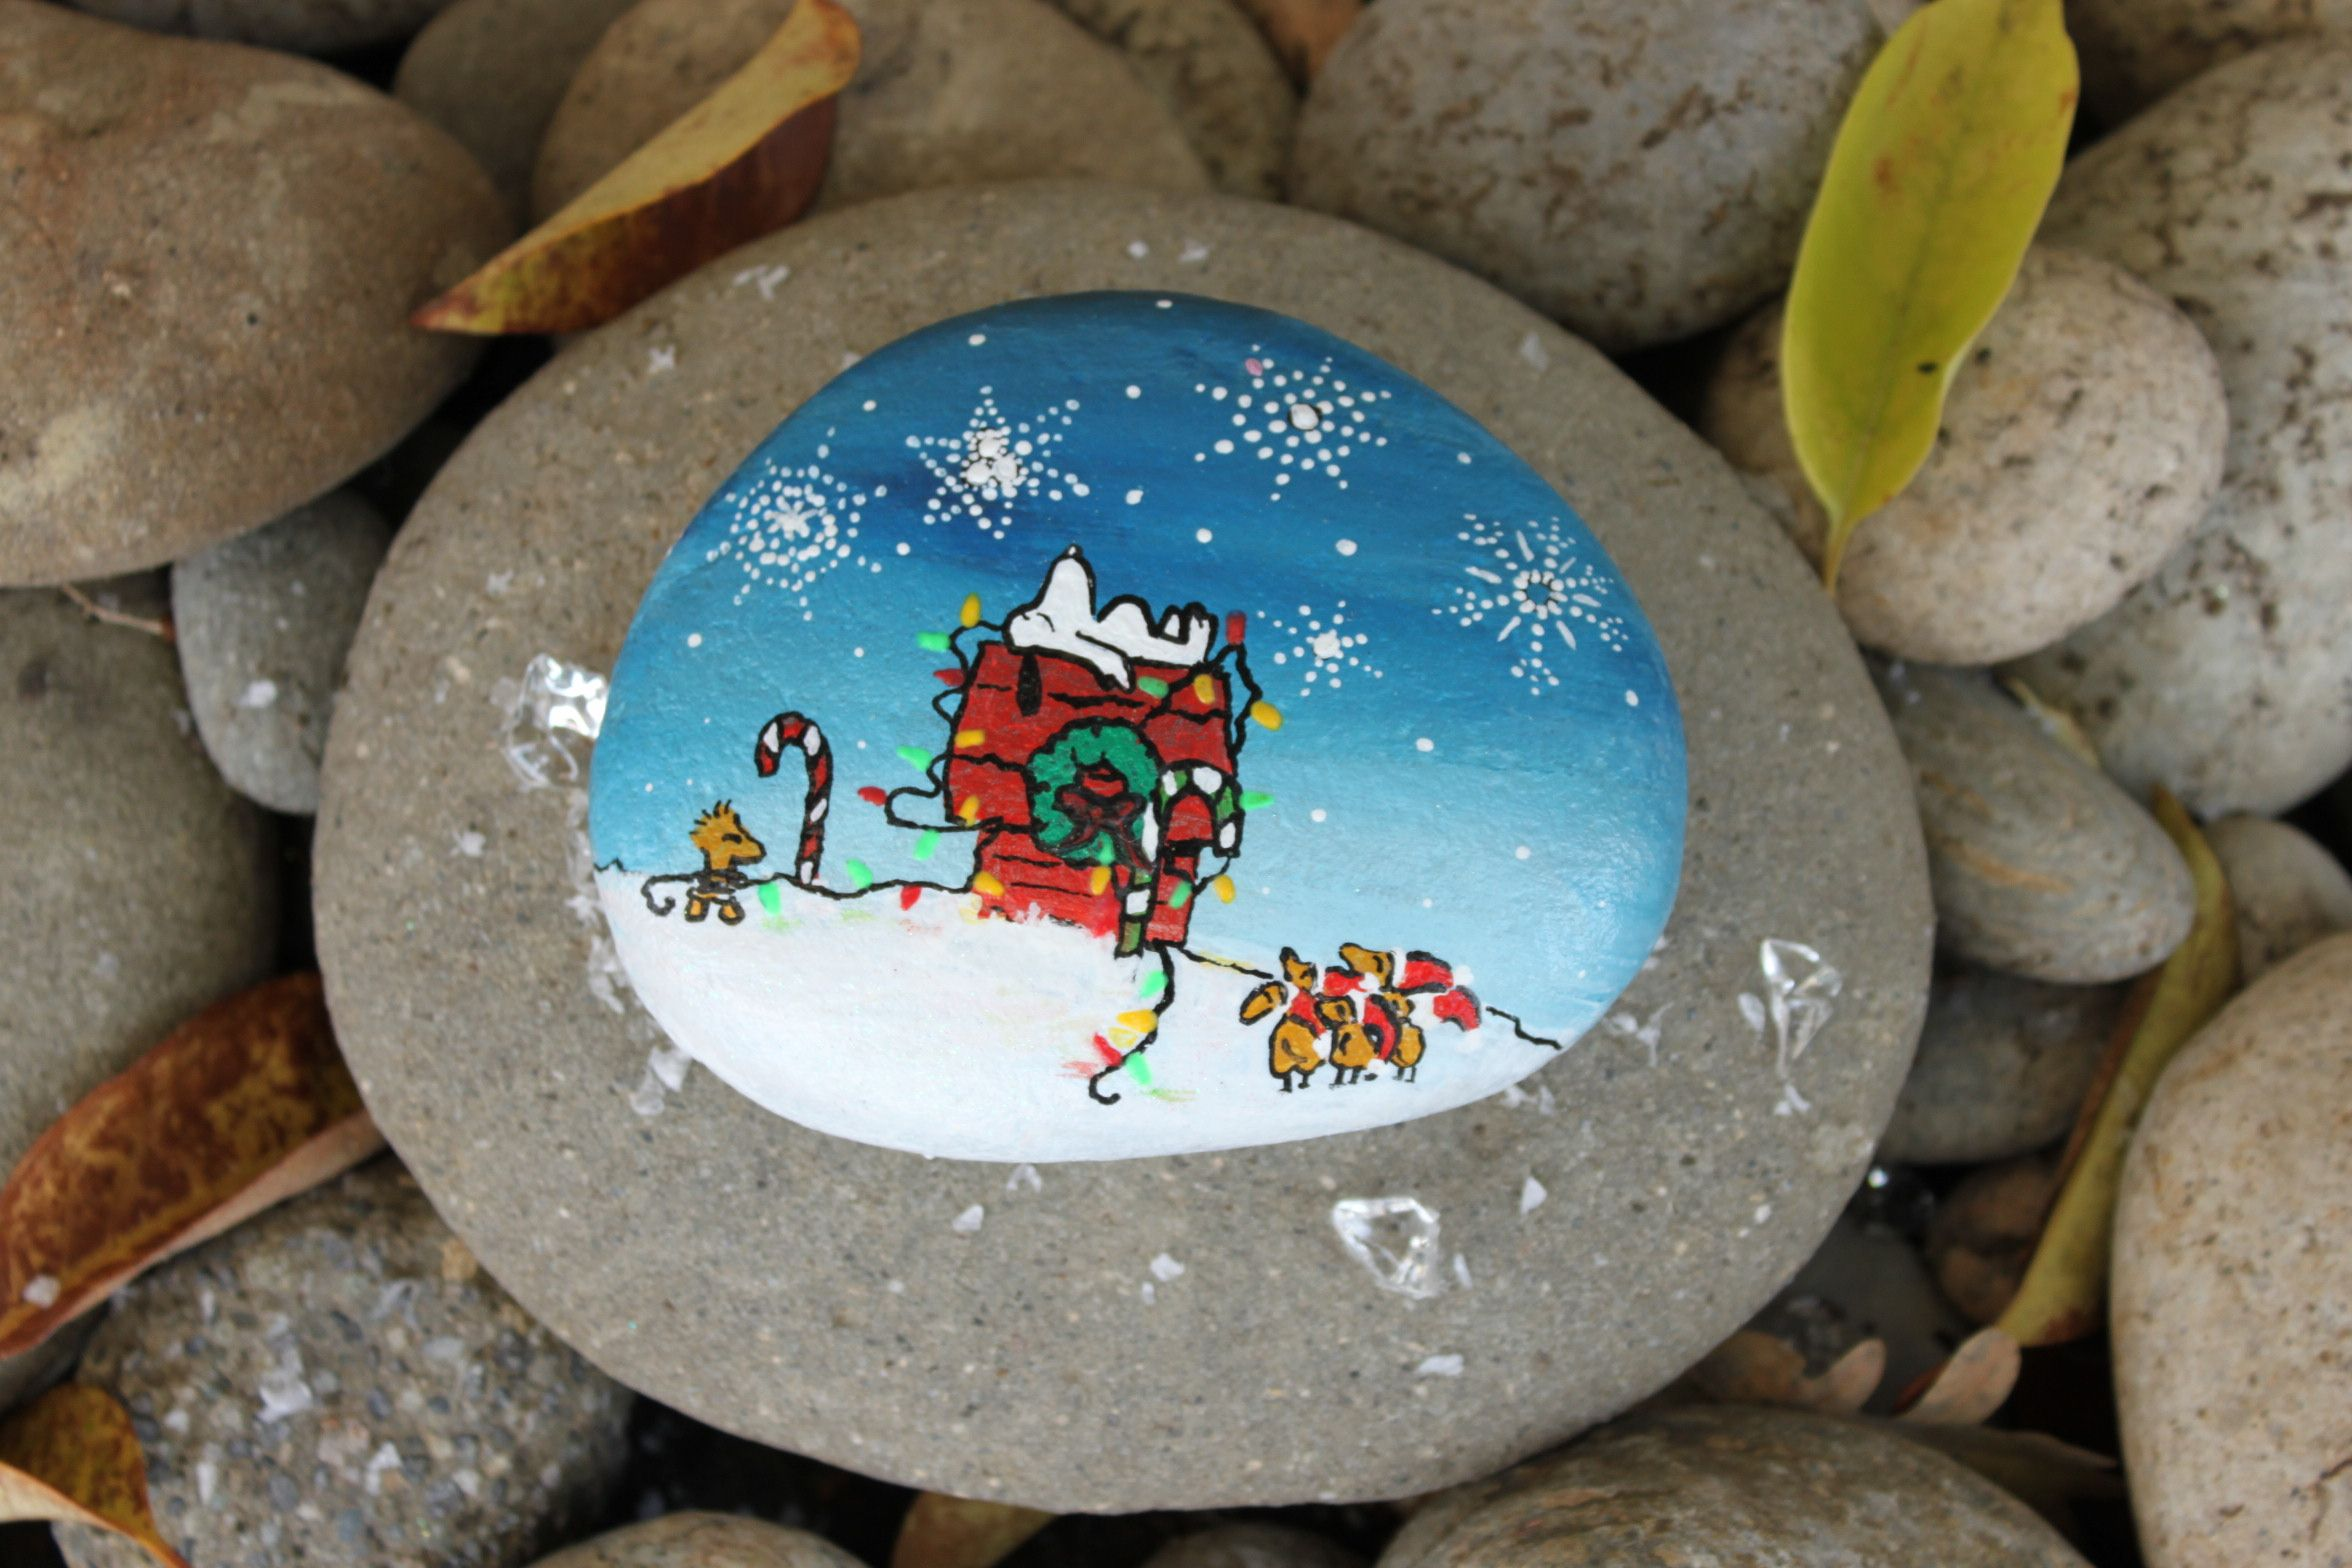 Snoopy sleeping Christmas scene - hand painted rock by Jessica Burcell